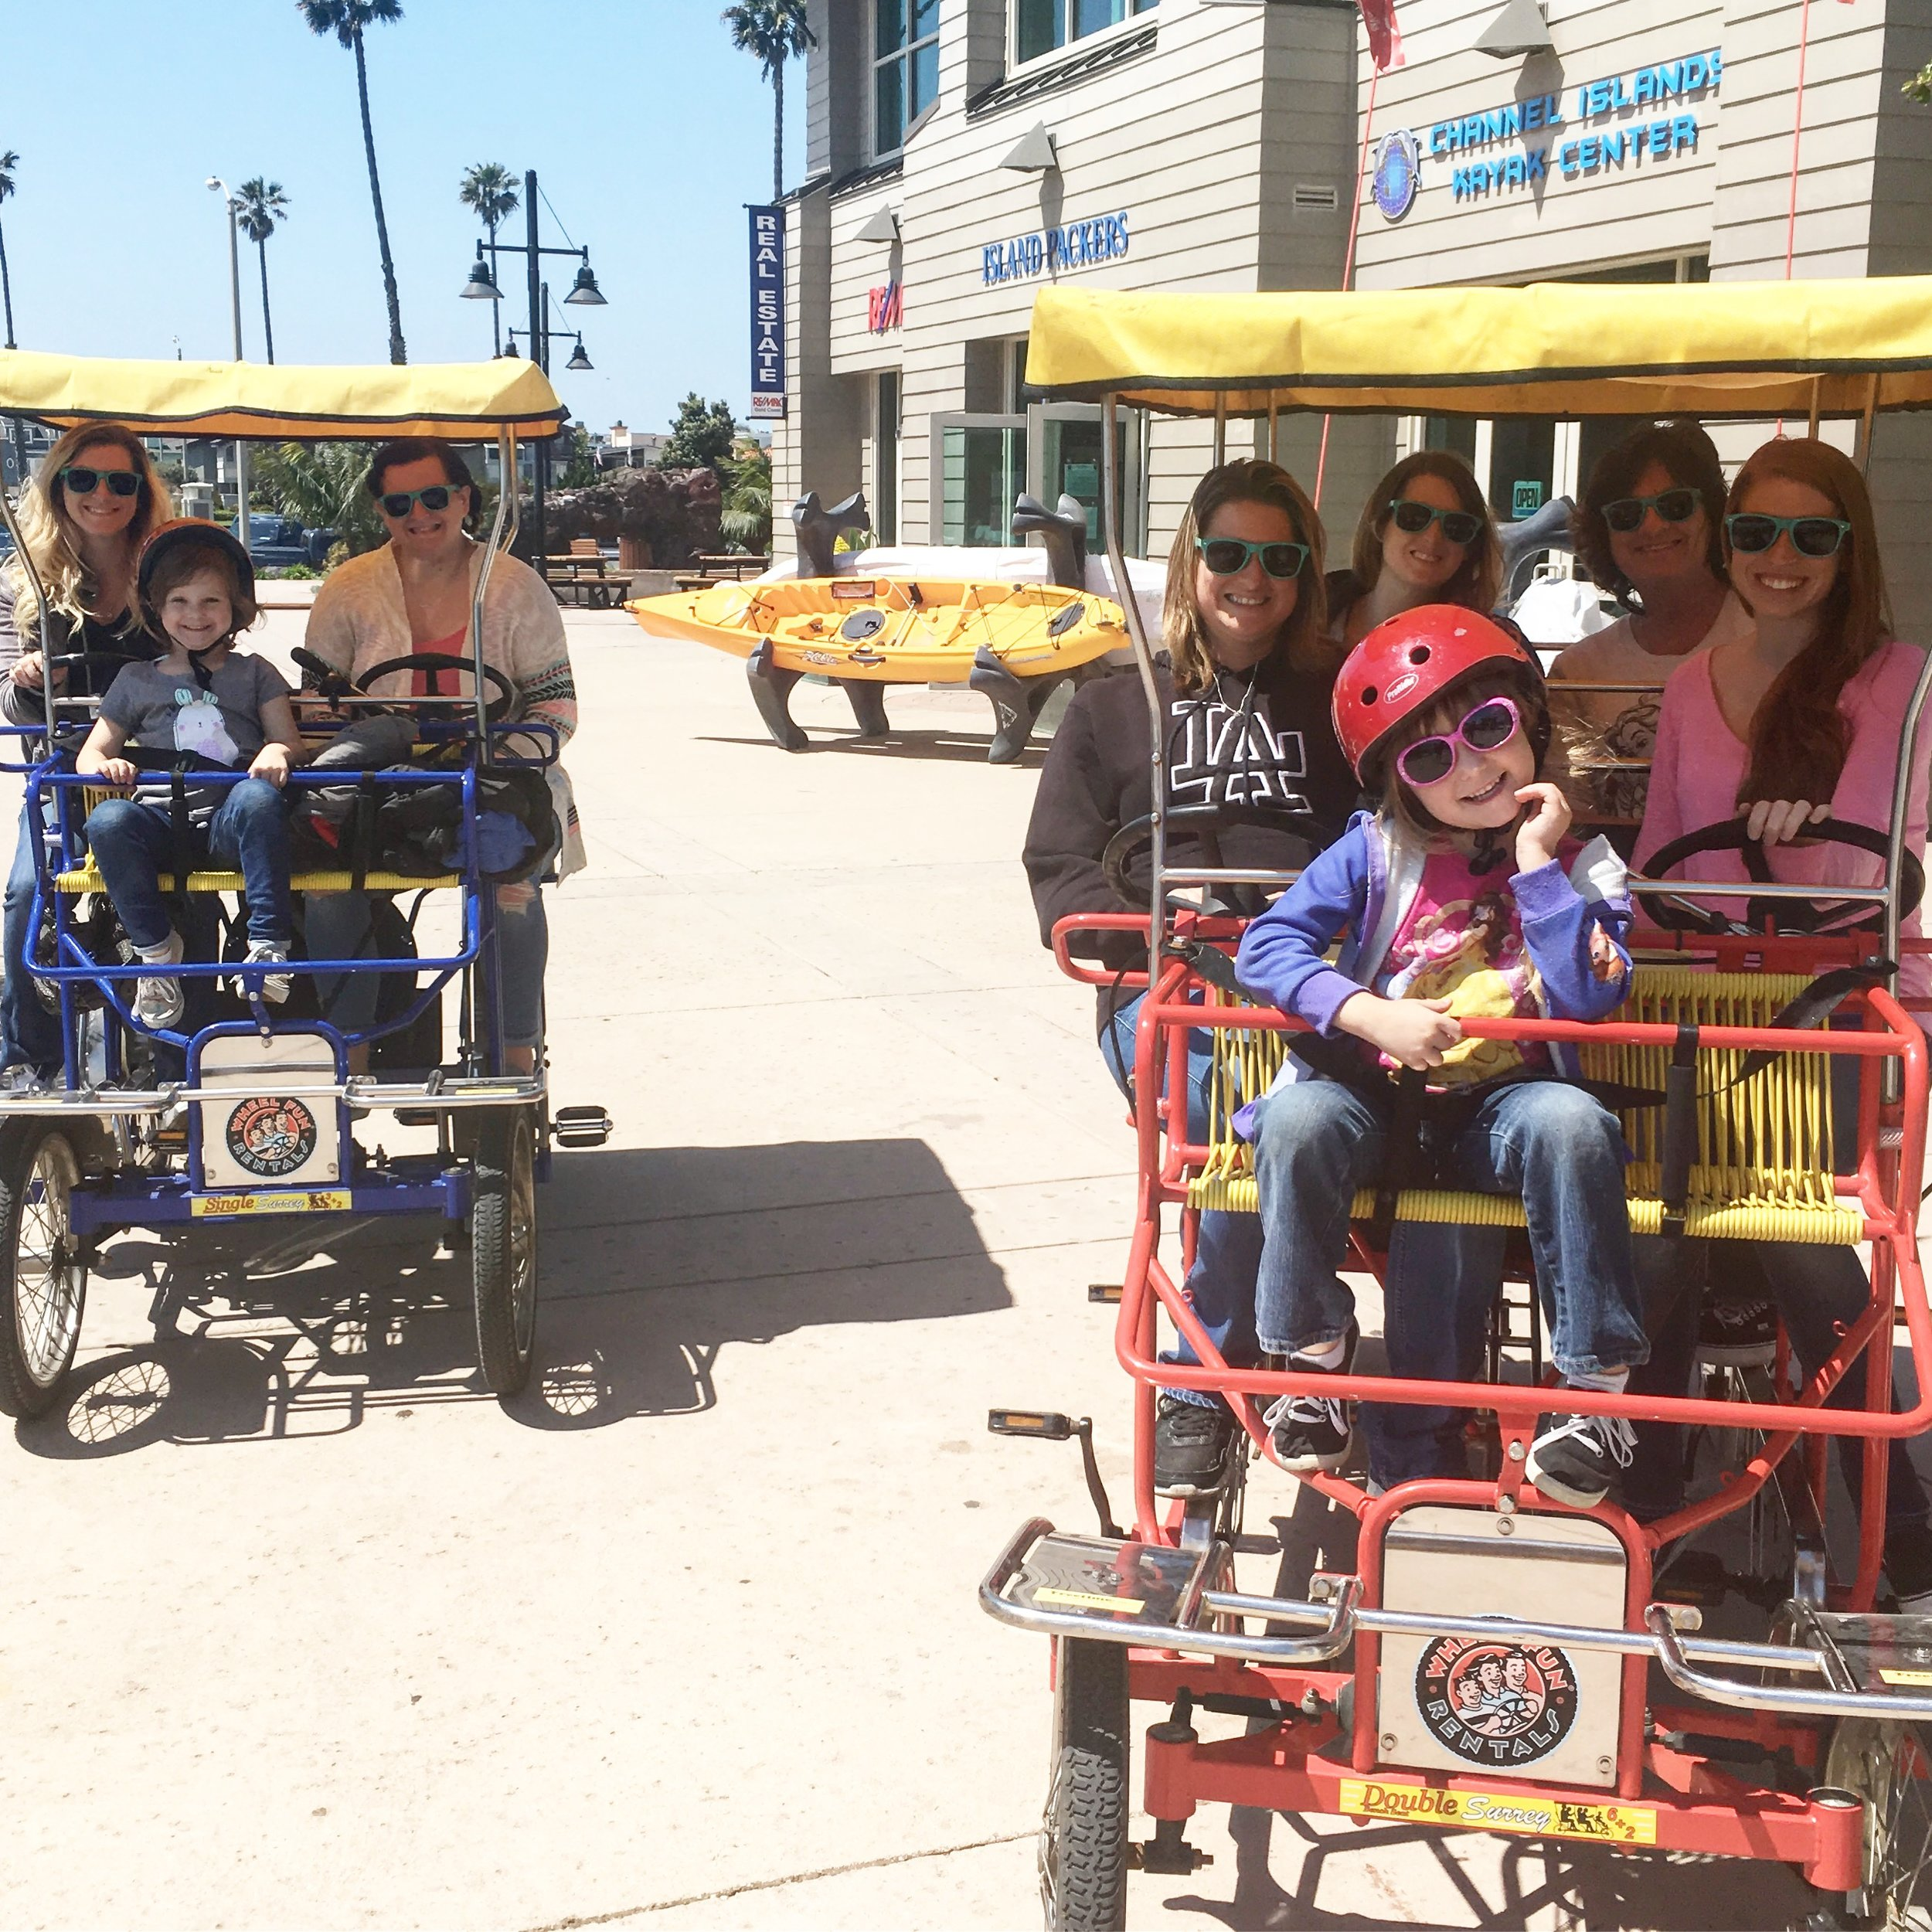 Wheel Fun Rentals - Ventura California - whatthegirlssay.com